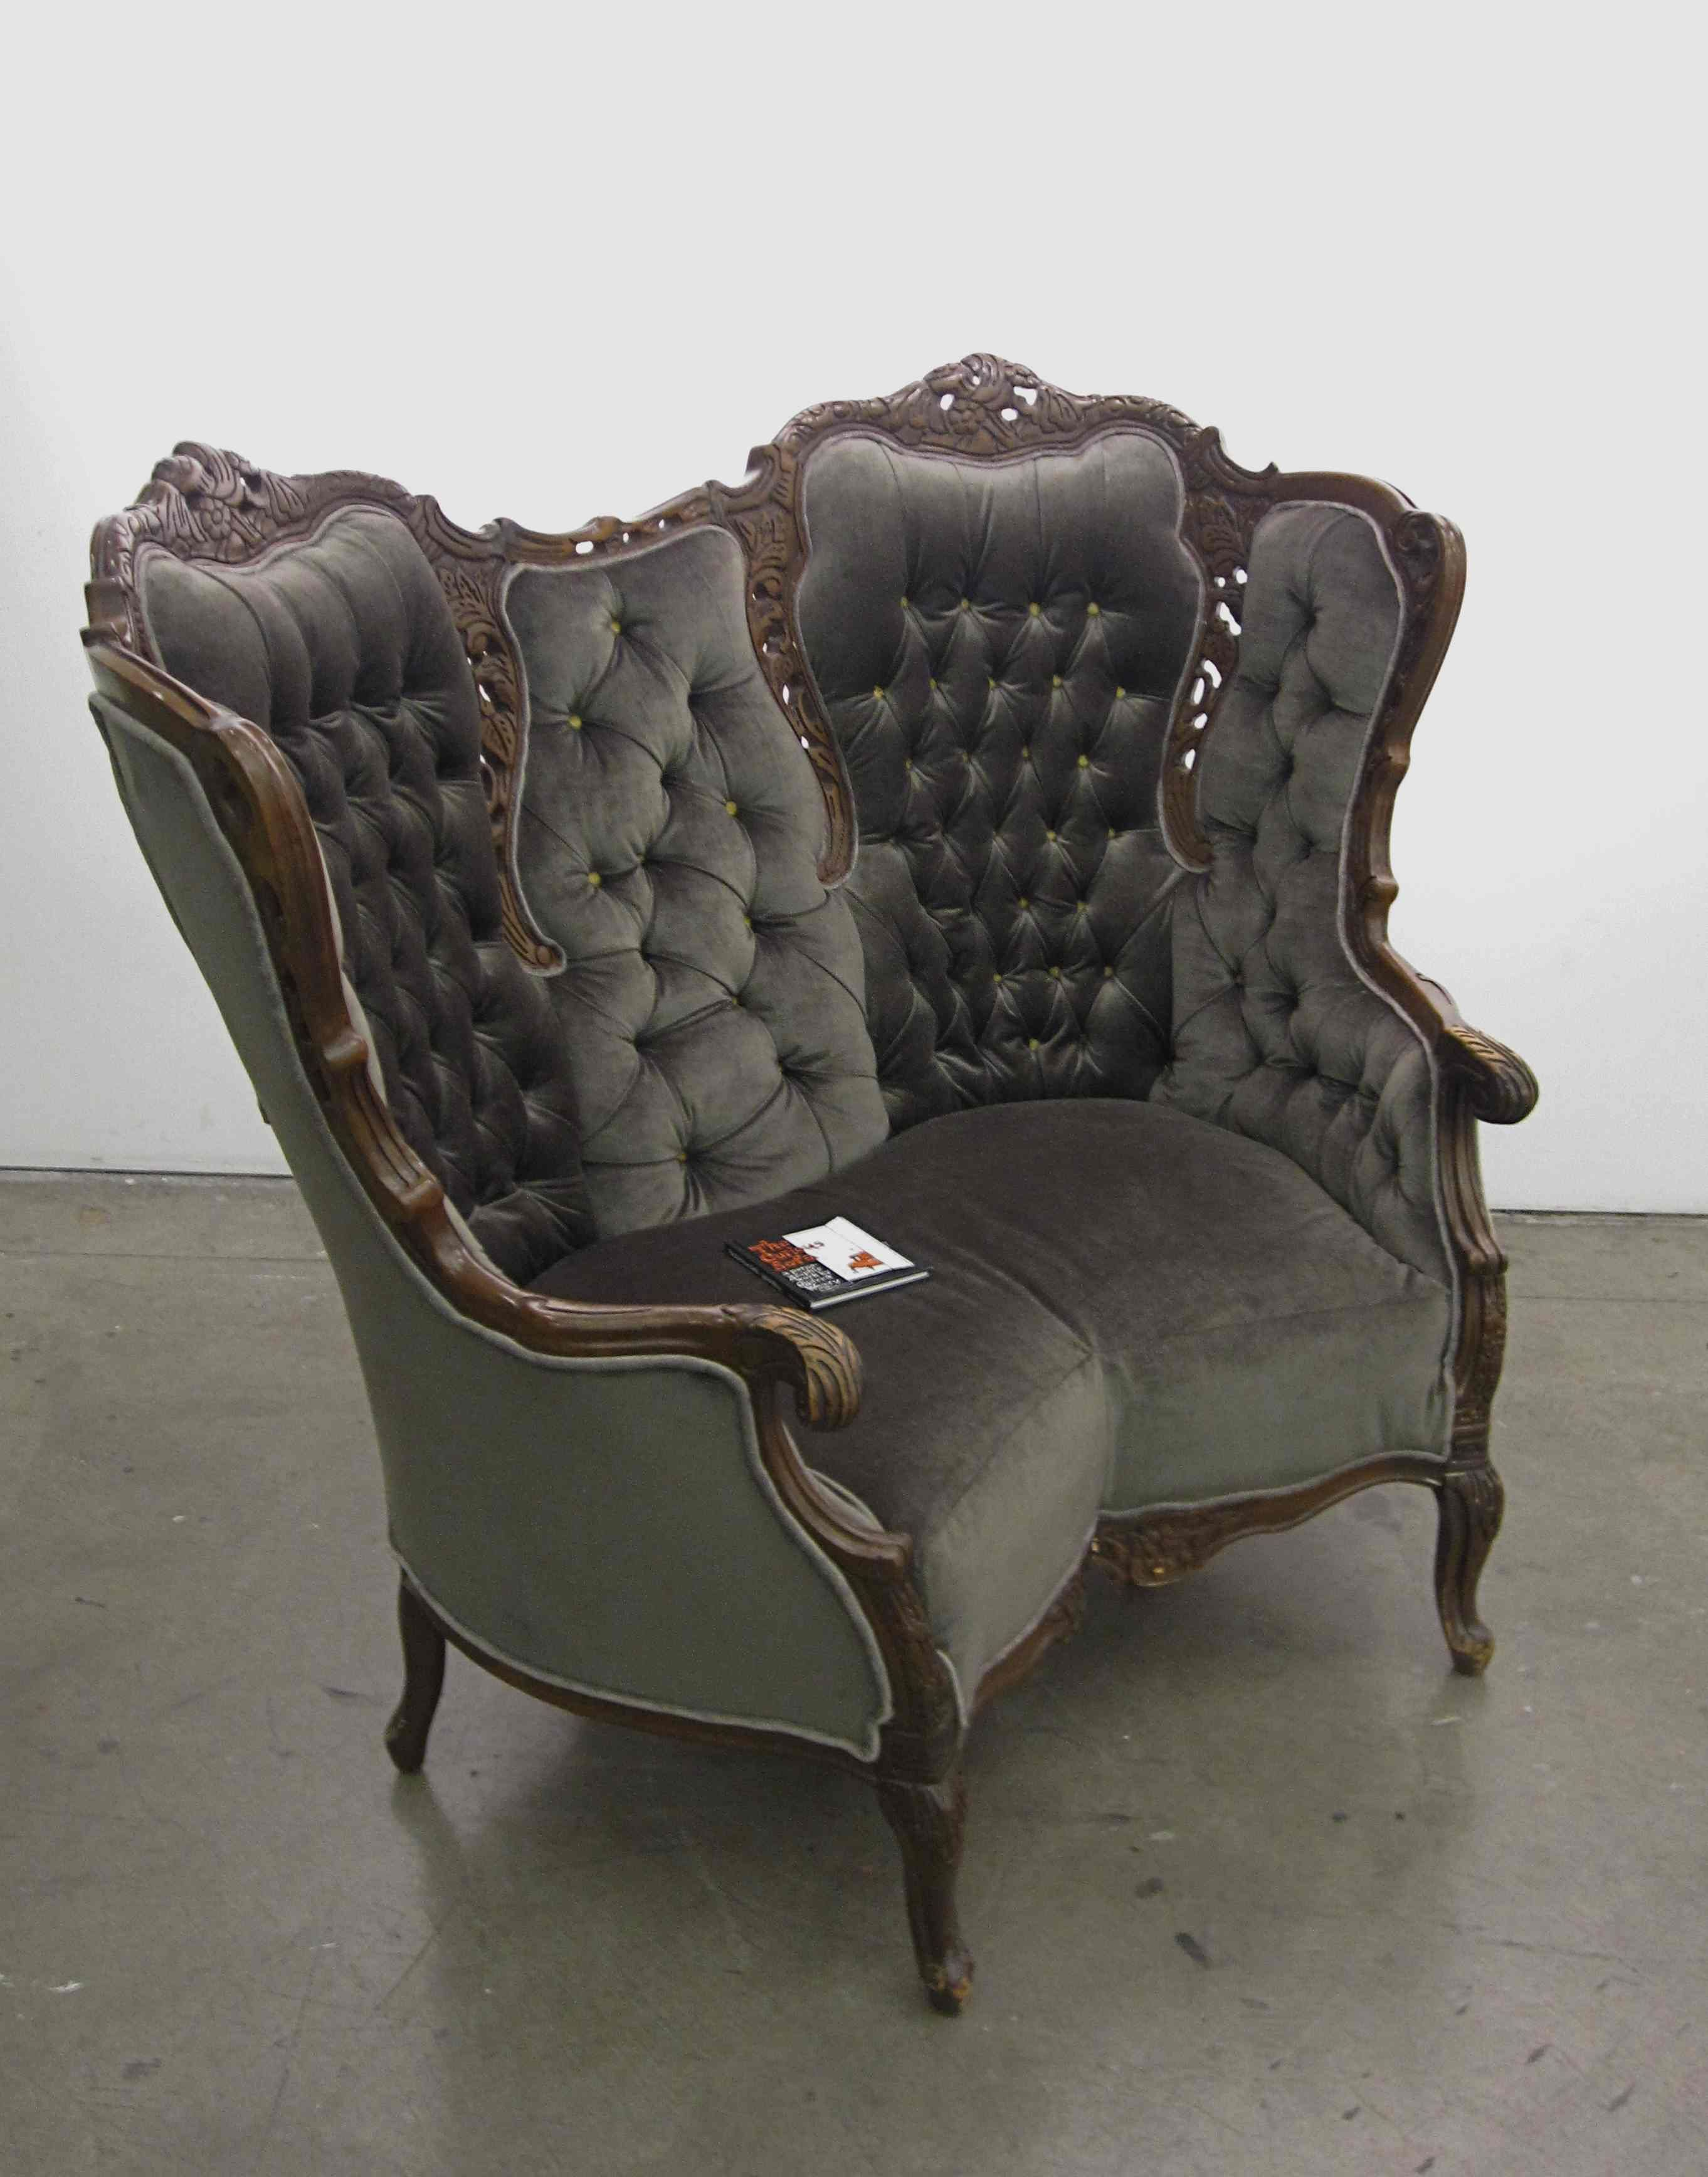 Modern victorian furniture - Cca Star Student Michele Marti Talks About Rejuvinating Victorian Chairs By Spreading Their Legs And Getting Very Naughty Family Tree At Petaluma Arts